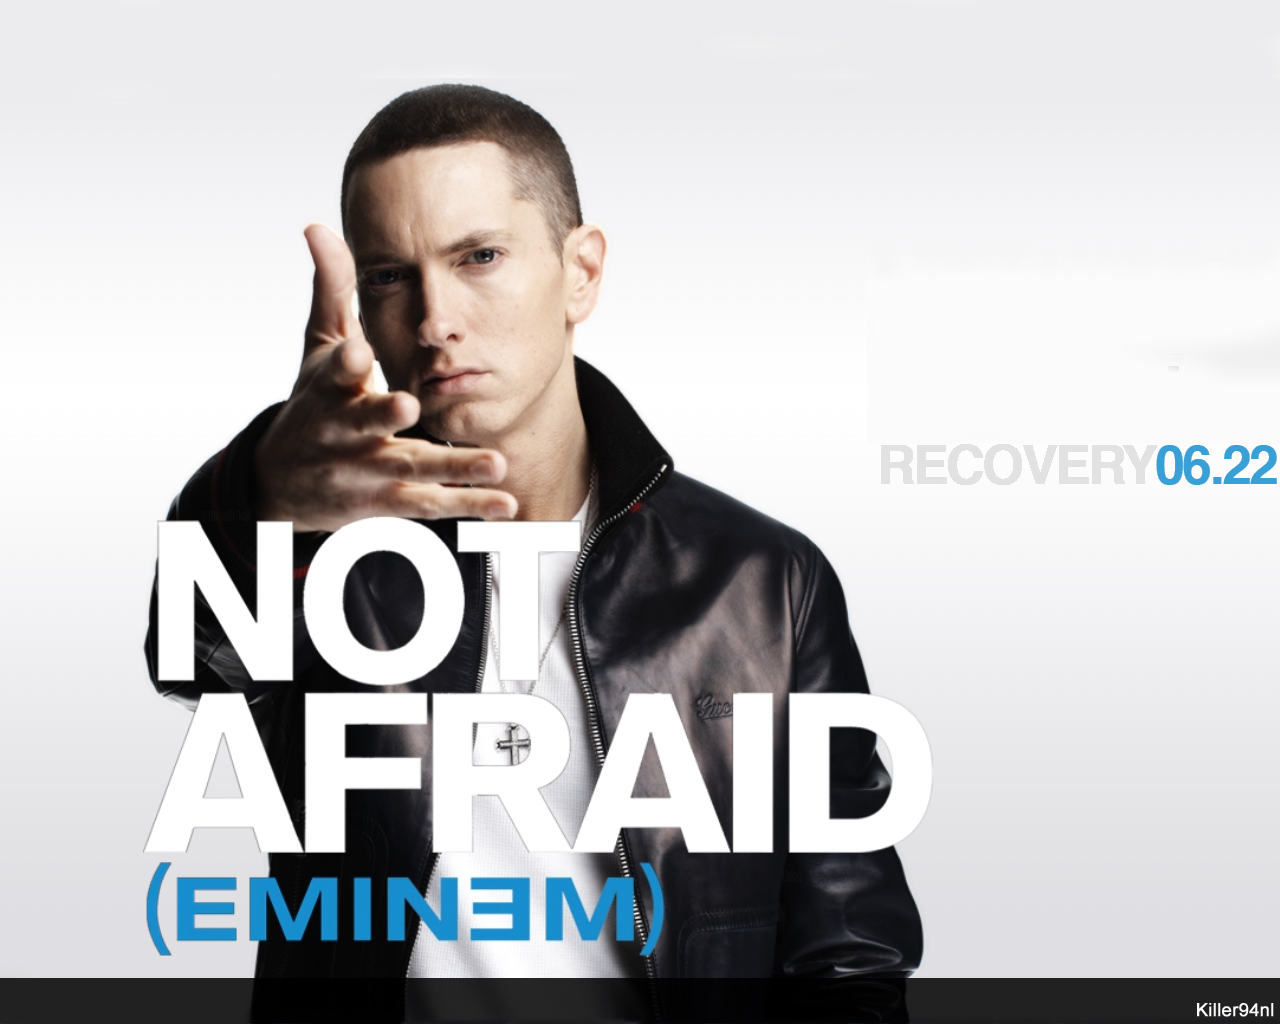 Not Afraid   Eminem Wallpaper and Background Image 1280x1024 1280x1024